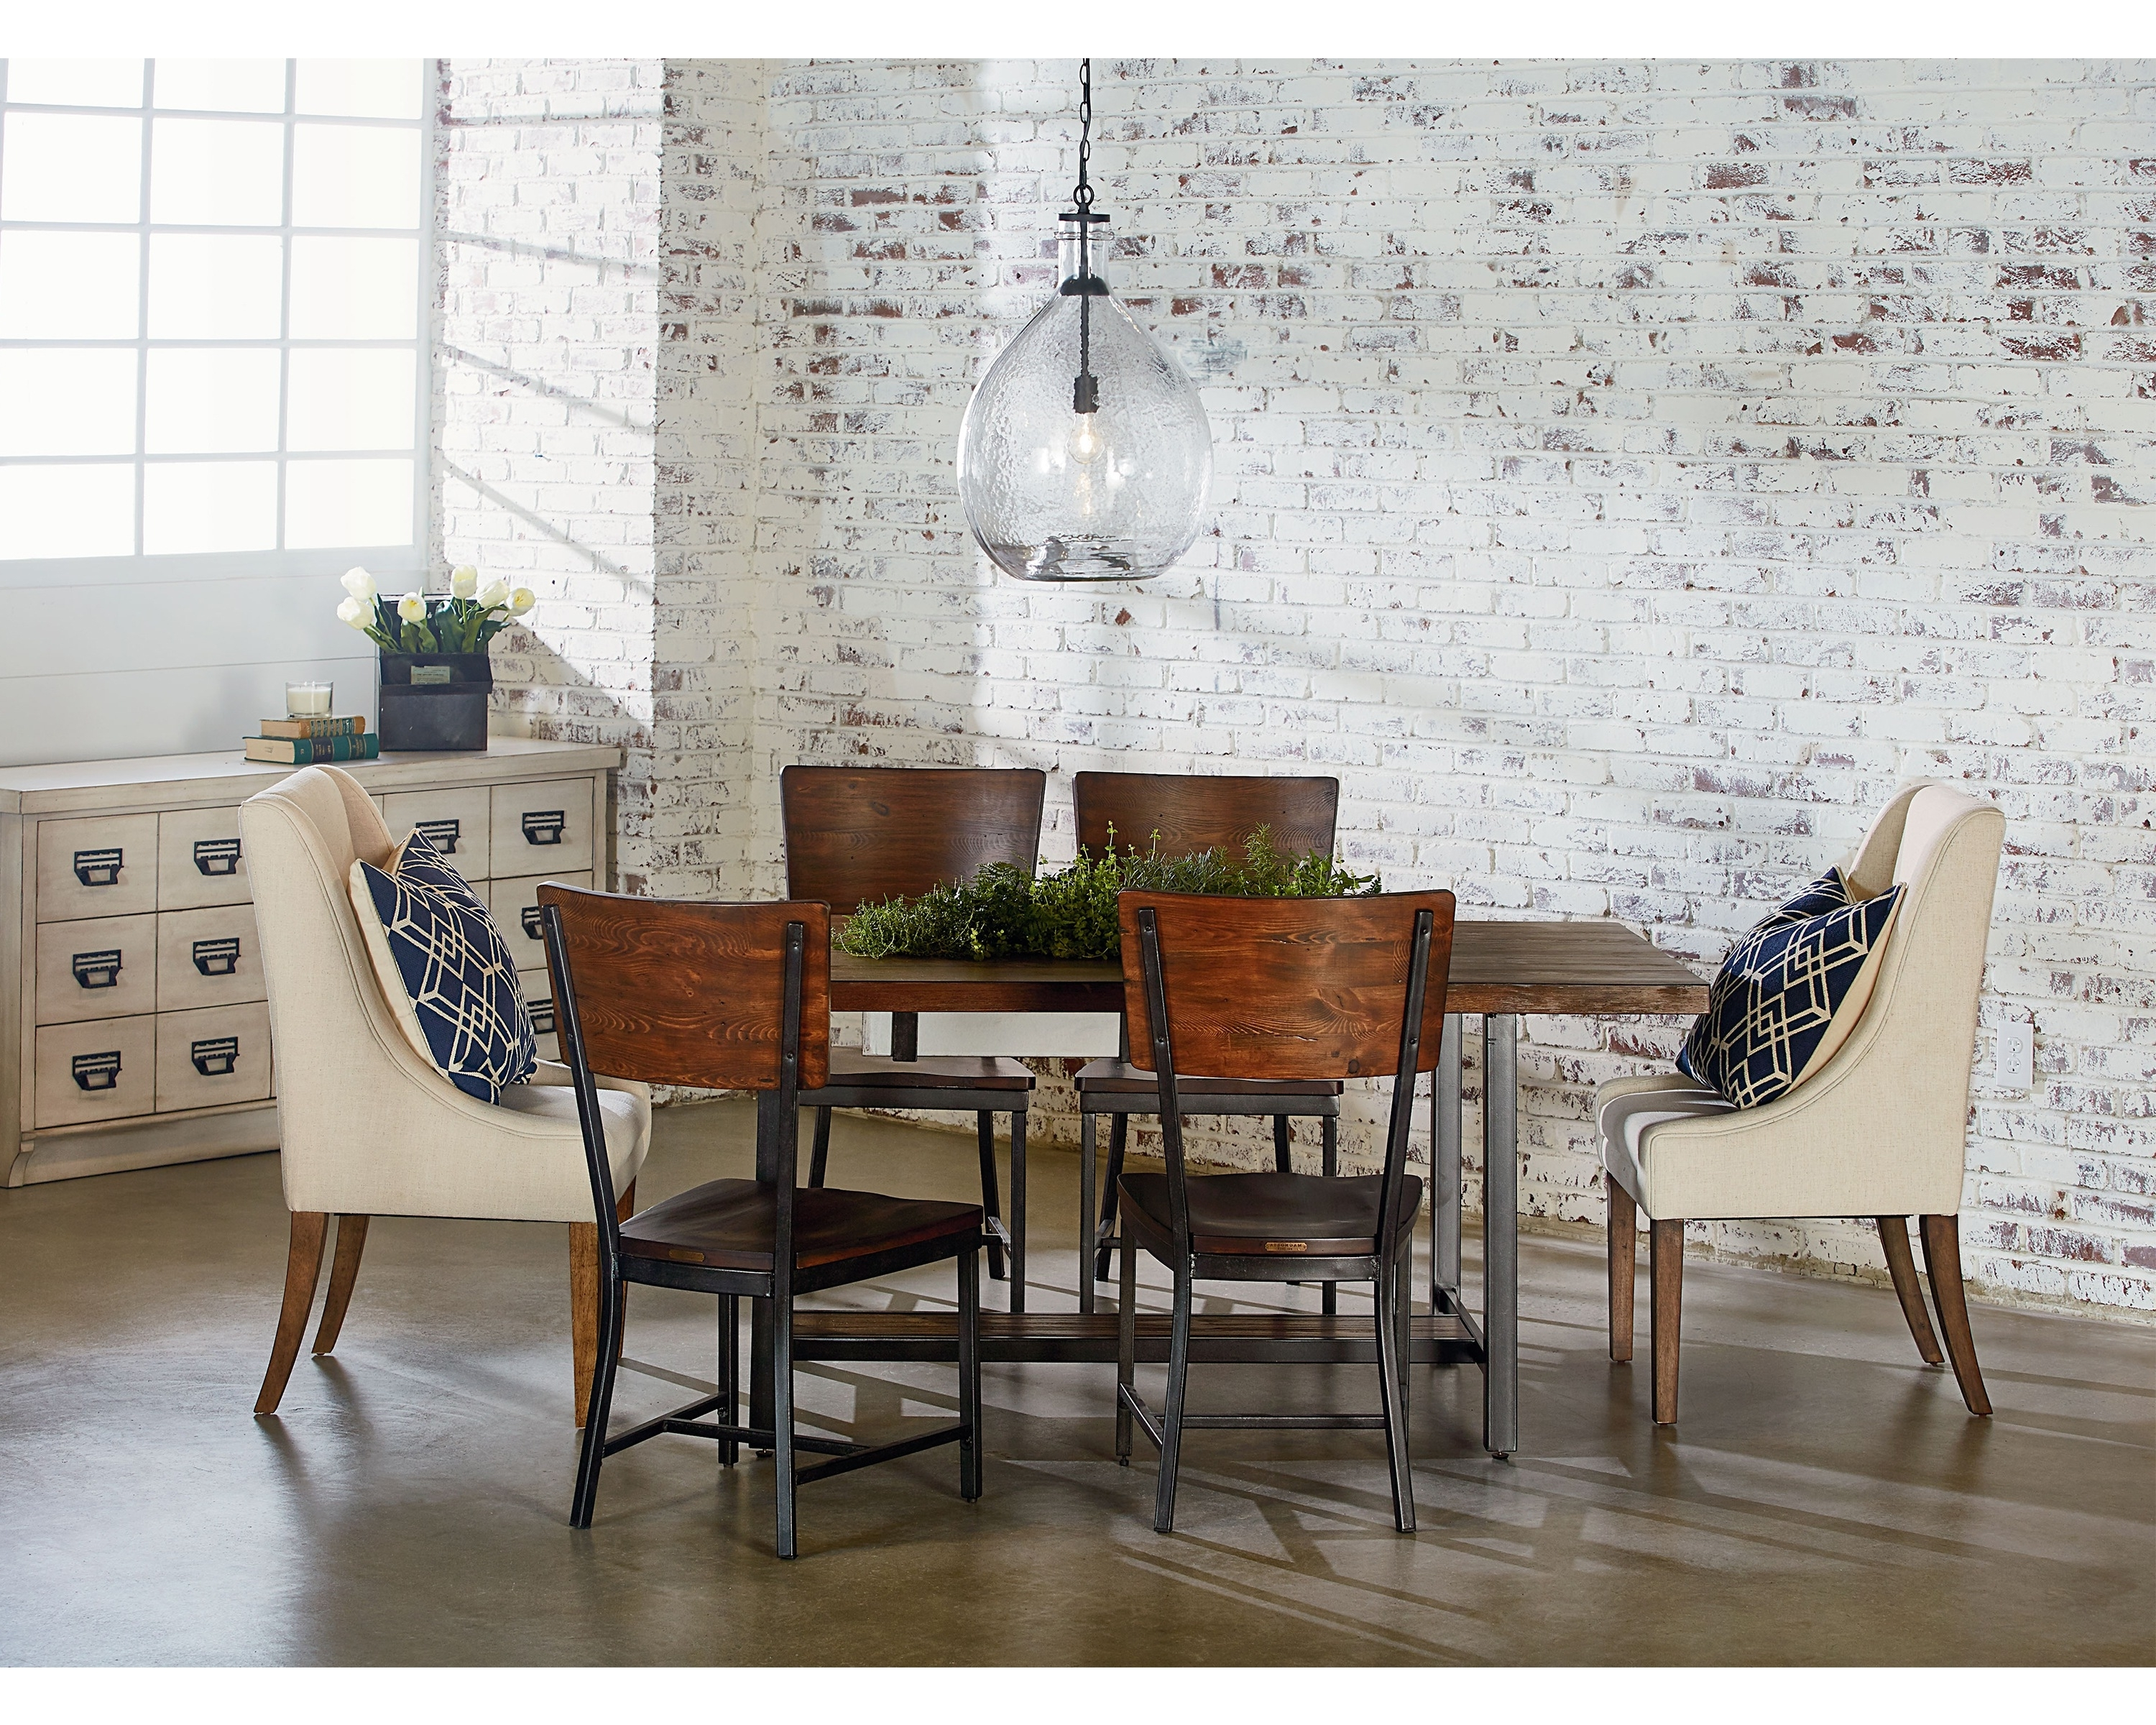 Magnolia Home Contour Milk Crate Side Chairs Intended For 2017 Contour Side Chair – Magnolia Home (View 2 of 20)